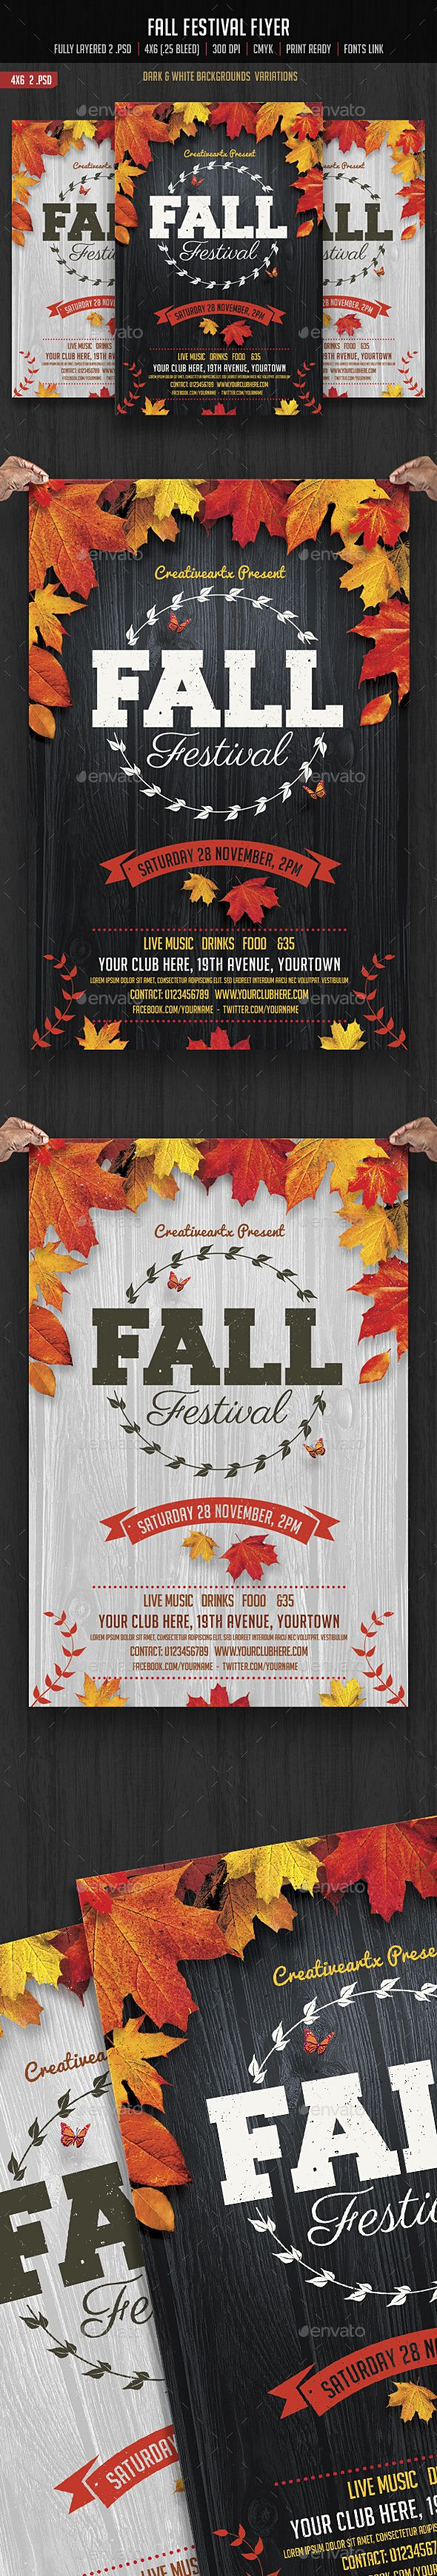 43 curated innovations fall festival ideas by thatpastorswife pumpkins natural fall decor and bar. Black Bedroom Furniture Sets. Home Design Ideas